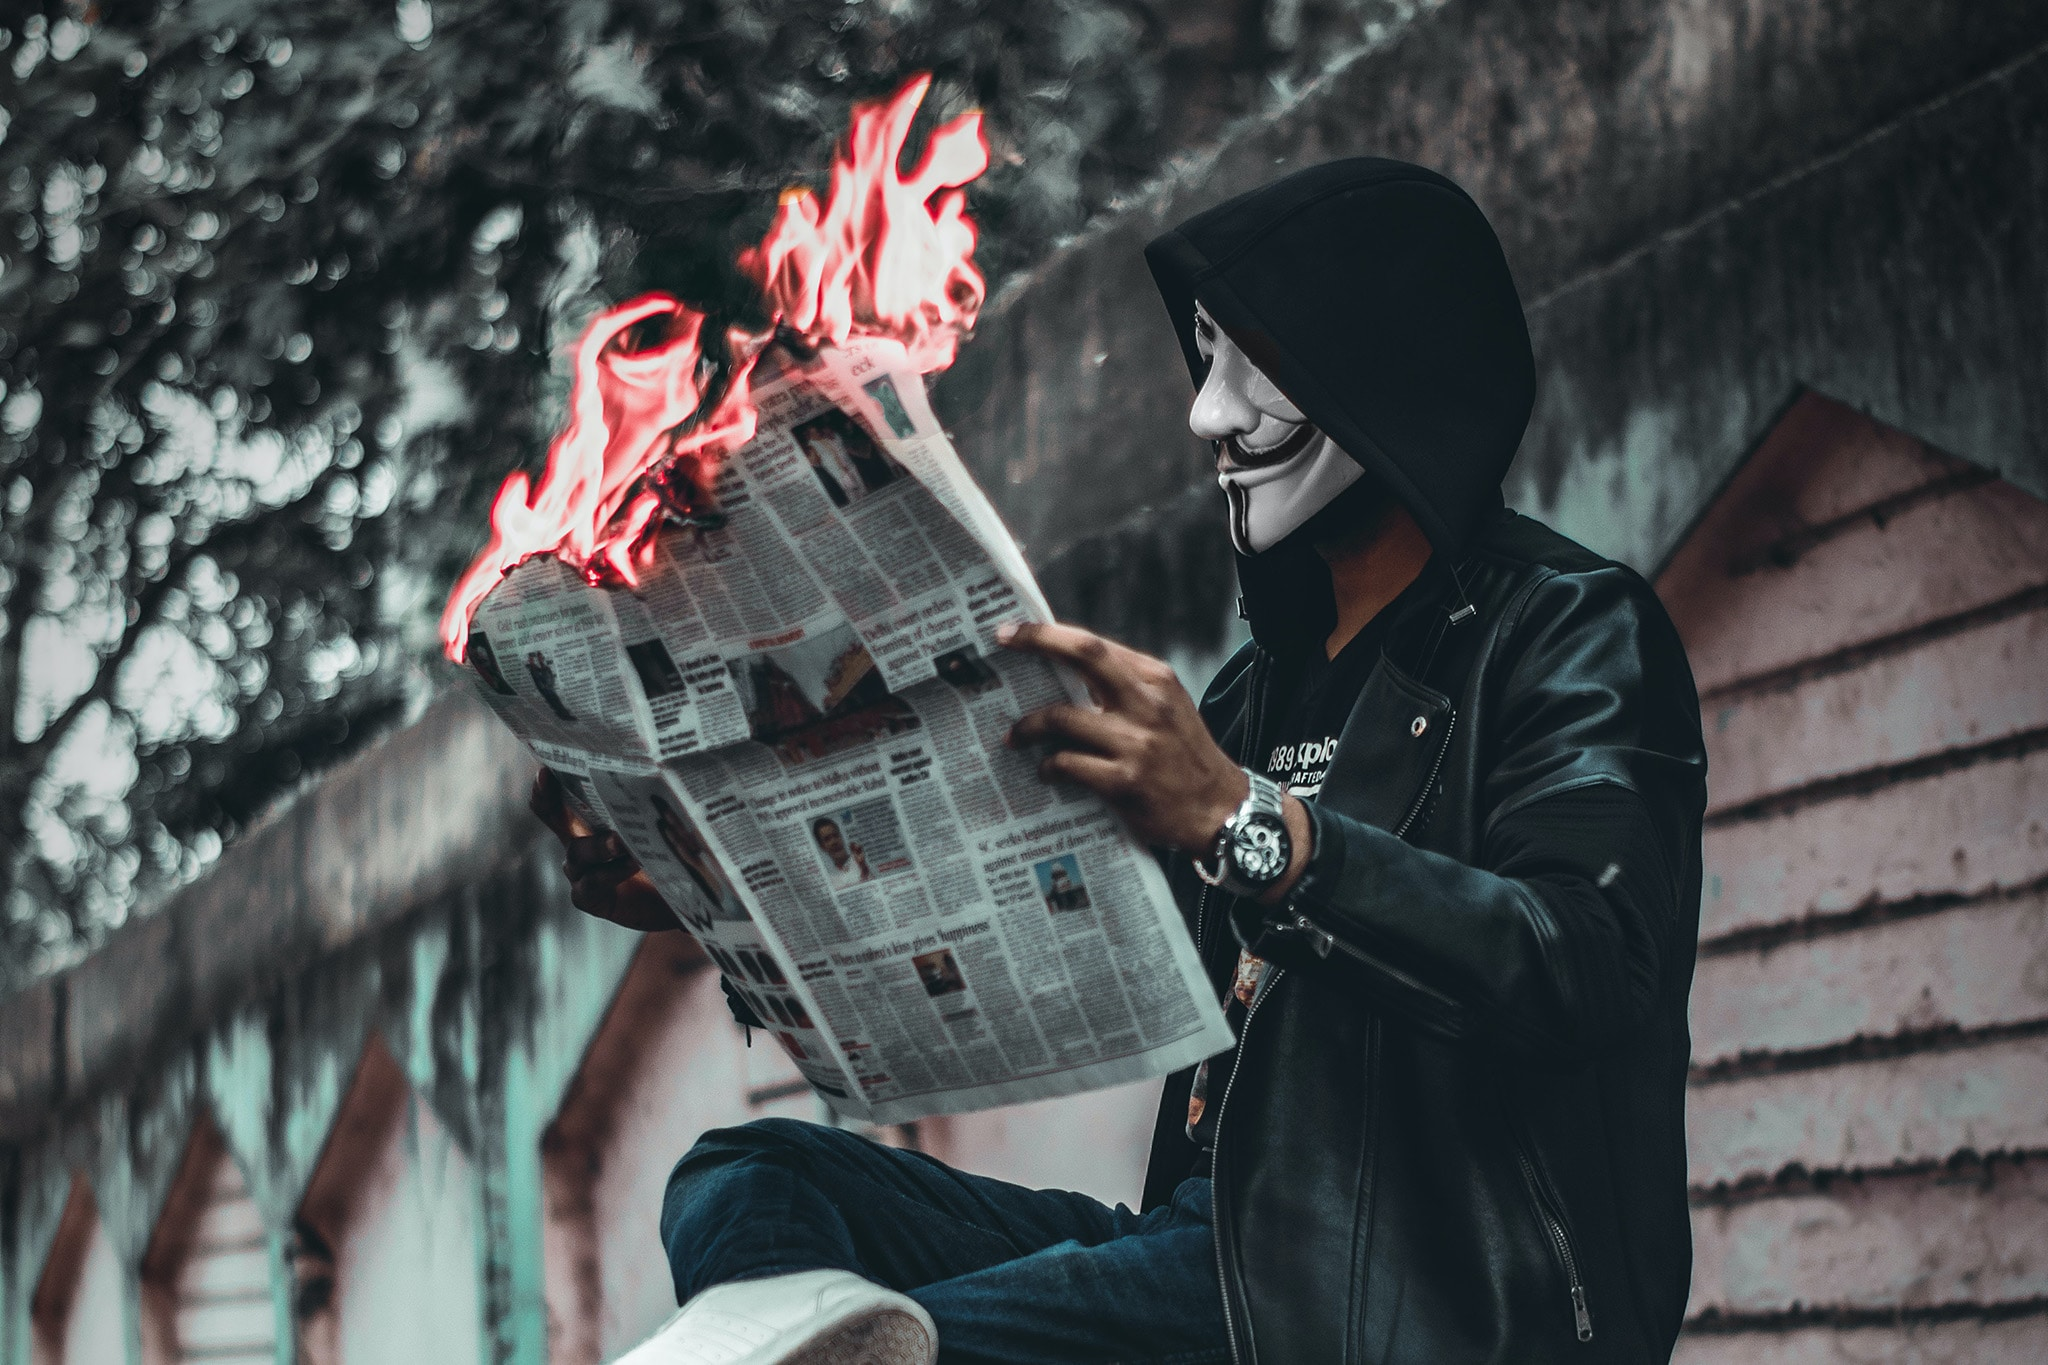 A Black man in a hoodie and Guy Fawkes mask is reading a newspaper that is on fire, symbolizing Marxist critiques and resistance under capitalism